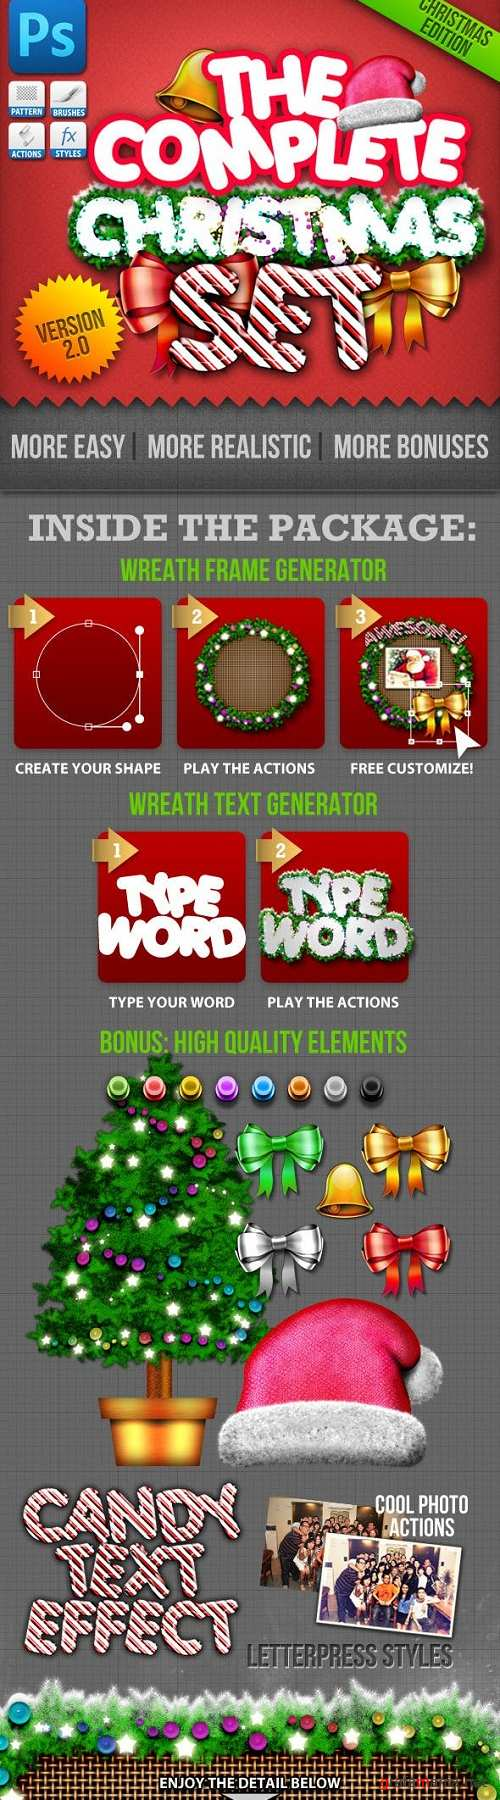 Christmas Generator Set: Actions and Text Styles - 802625